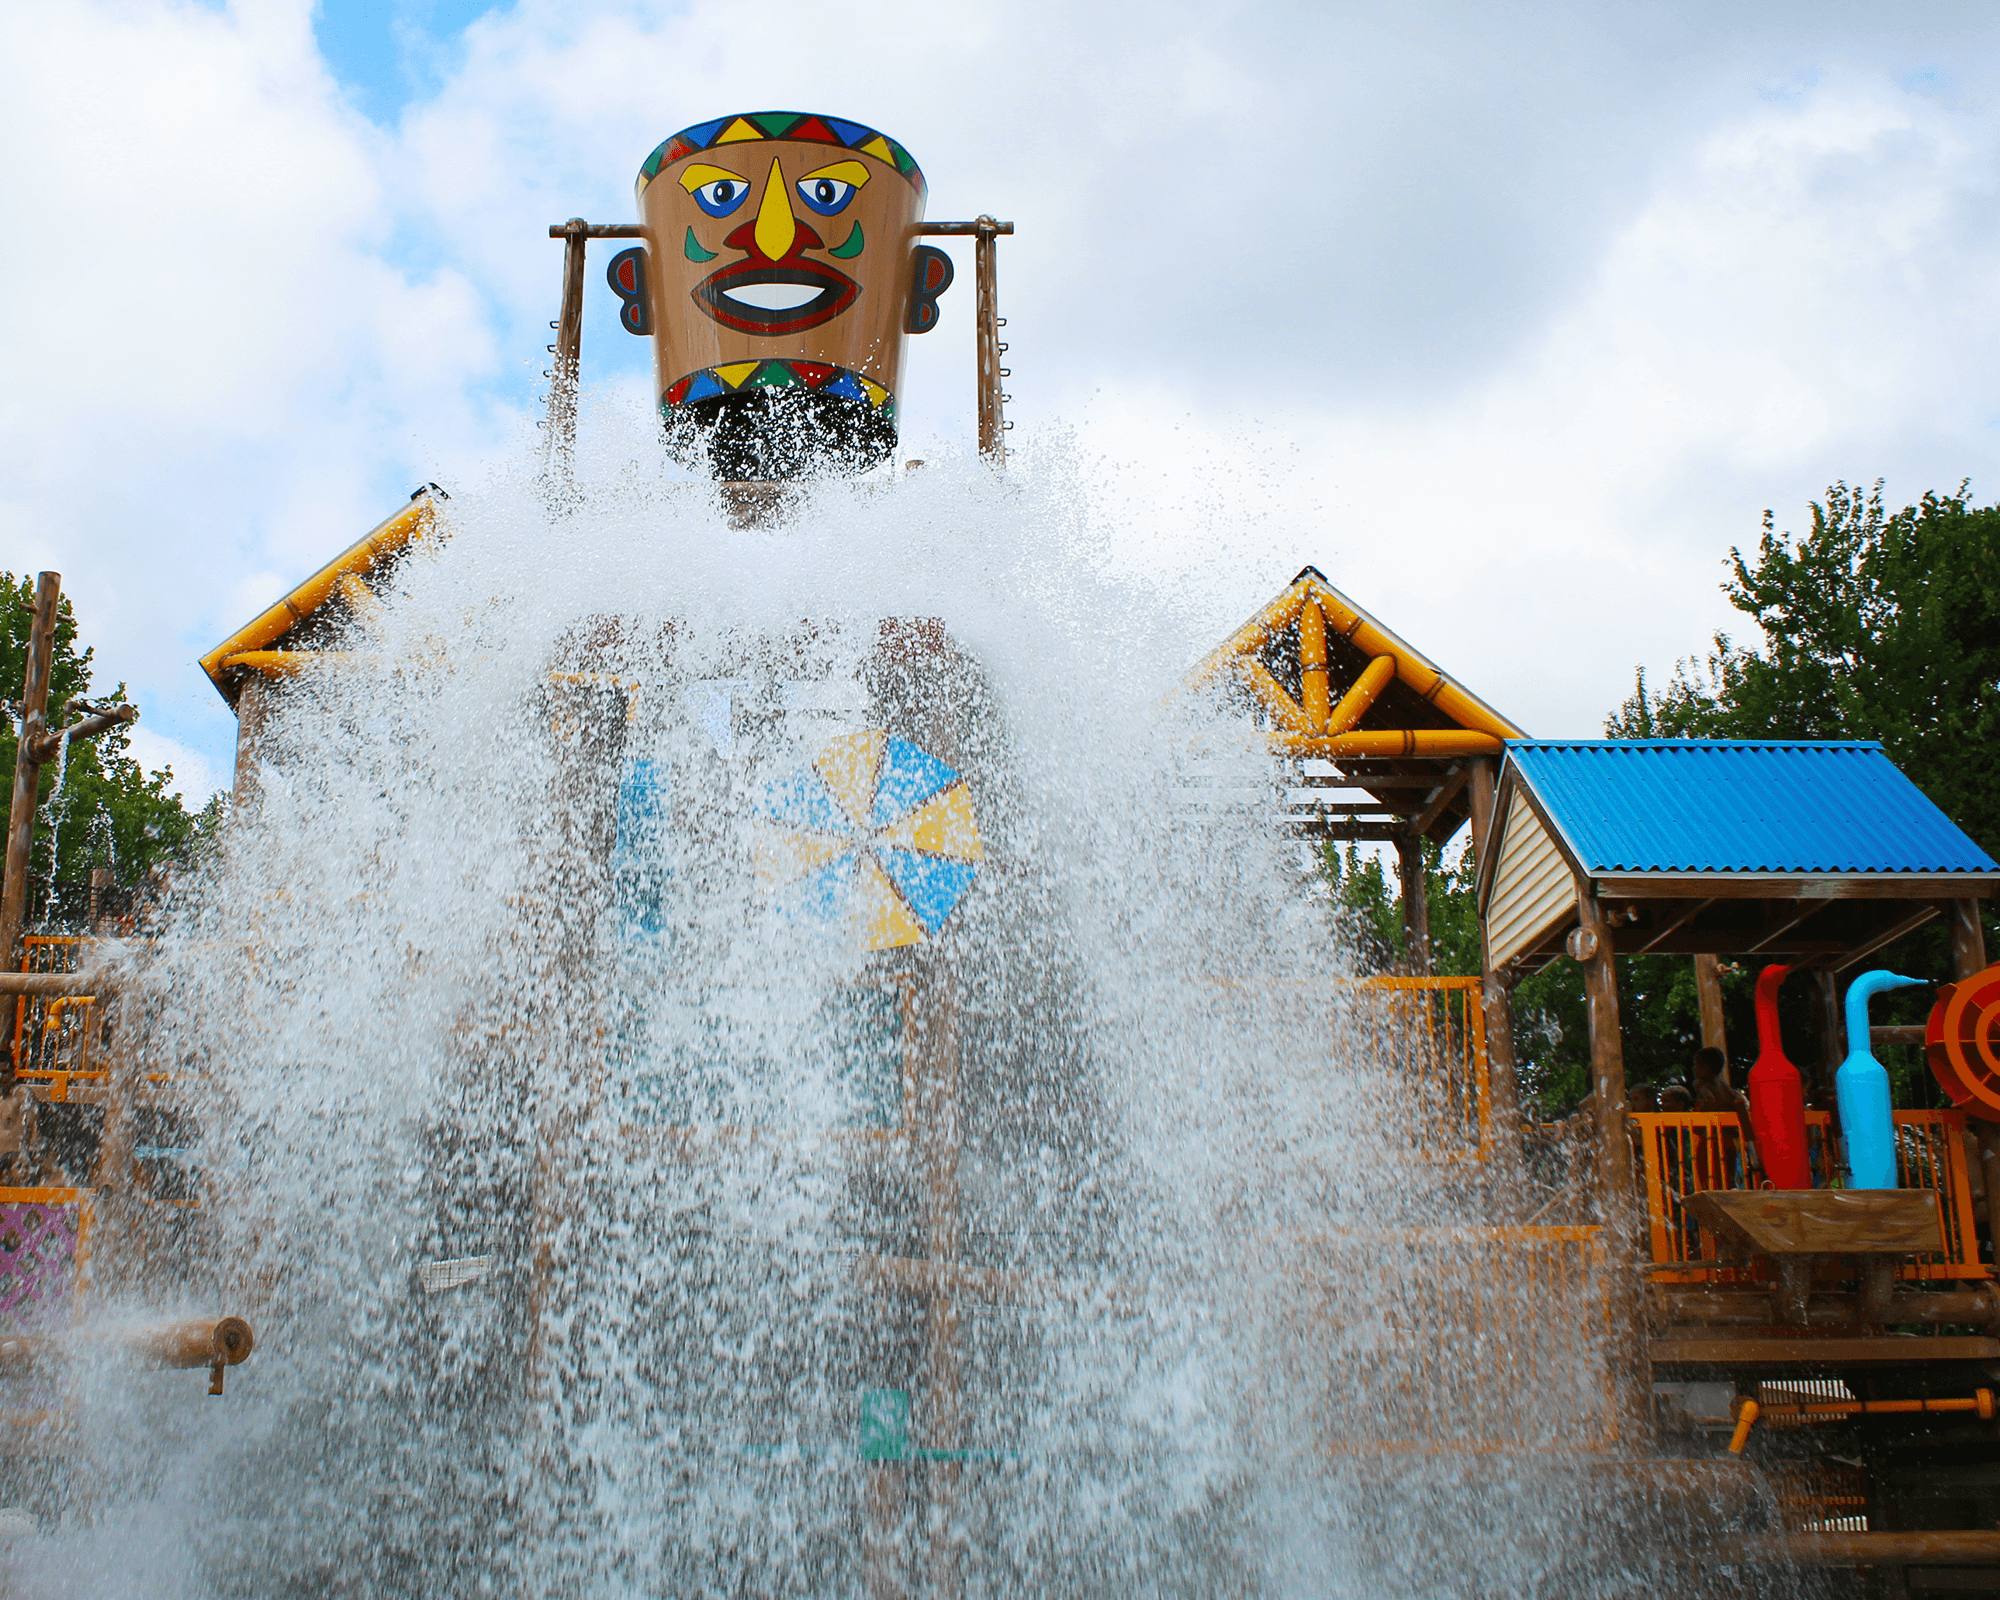 Monsoon Lagoon | Holiday World & Splashin' Safari